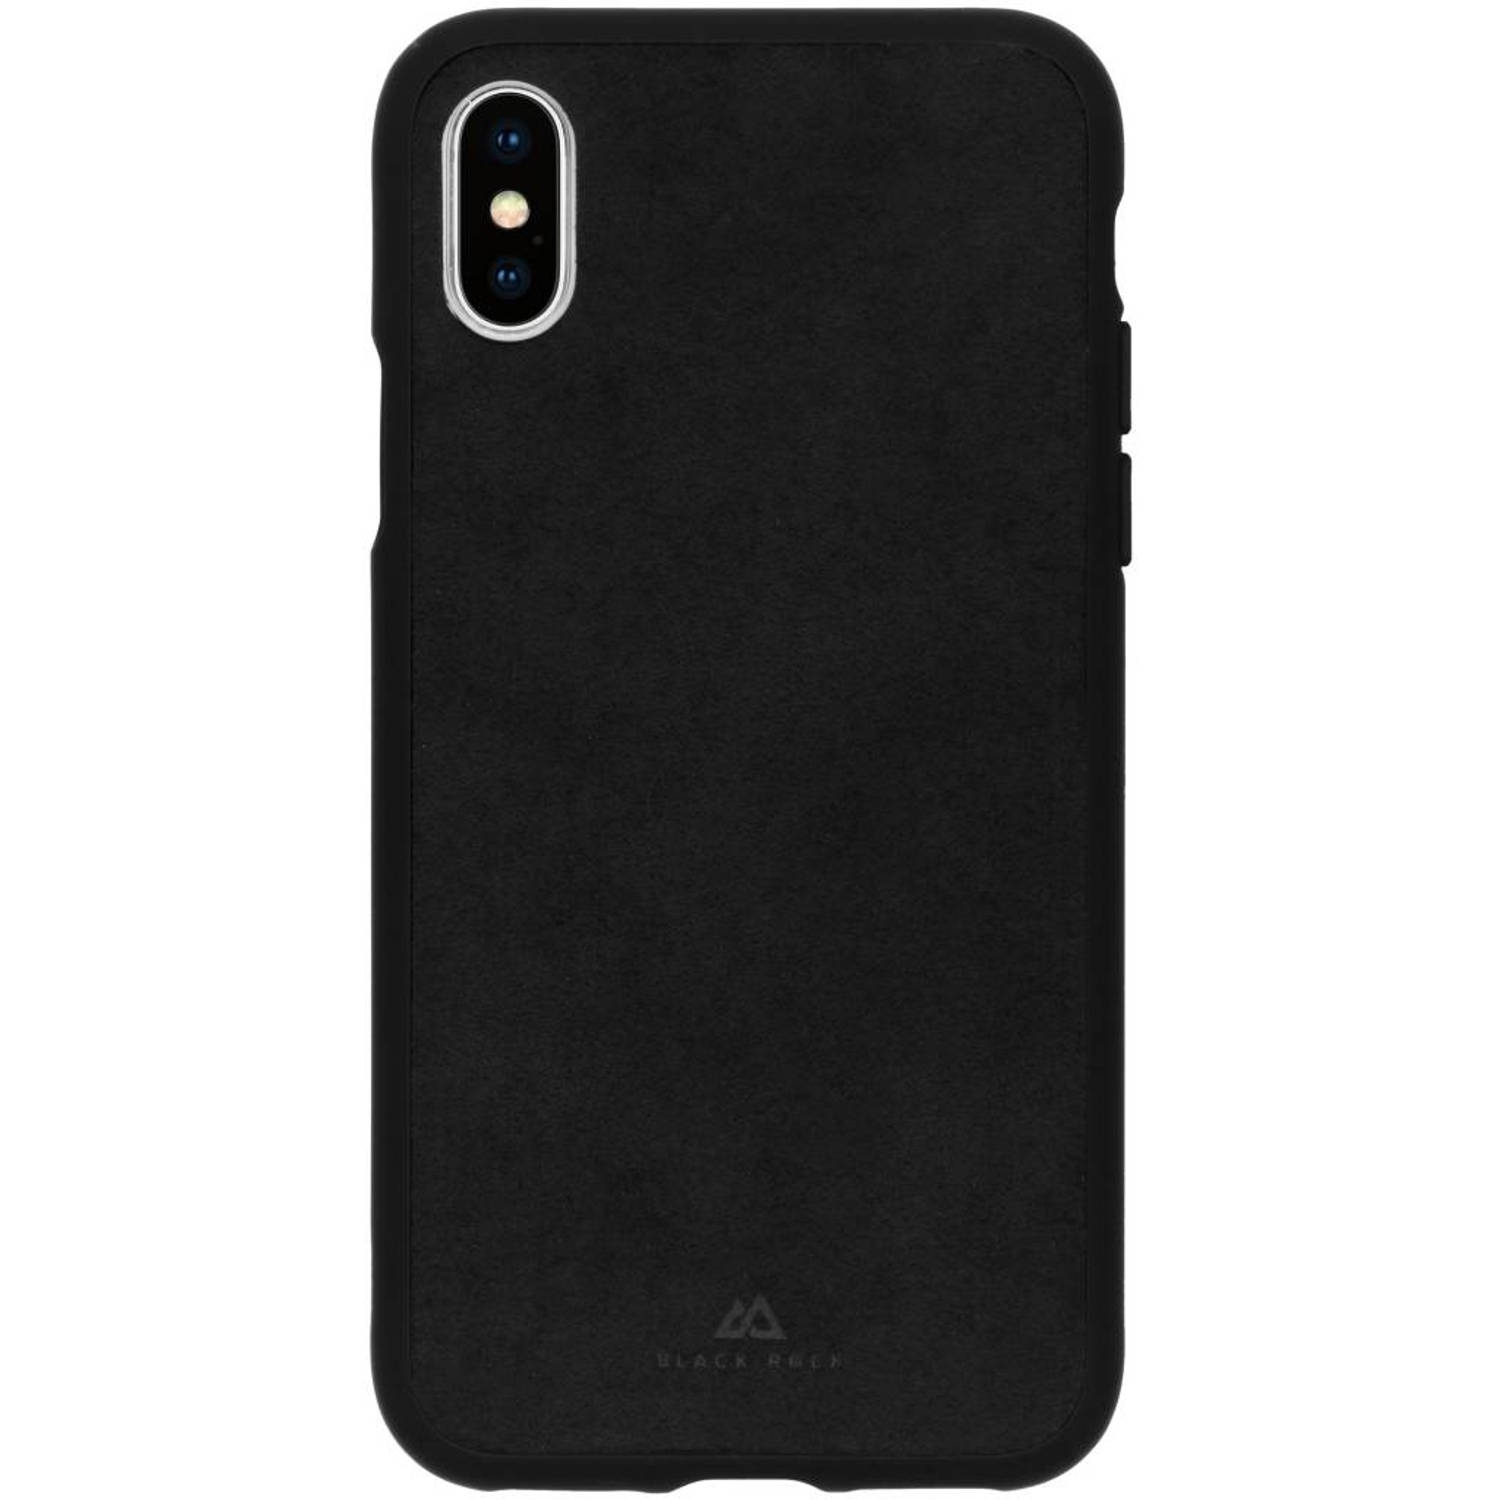 The Statement Backcover iPhone Xs Max hoesje - Zwart